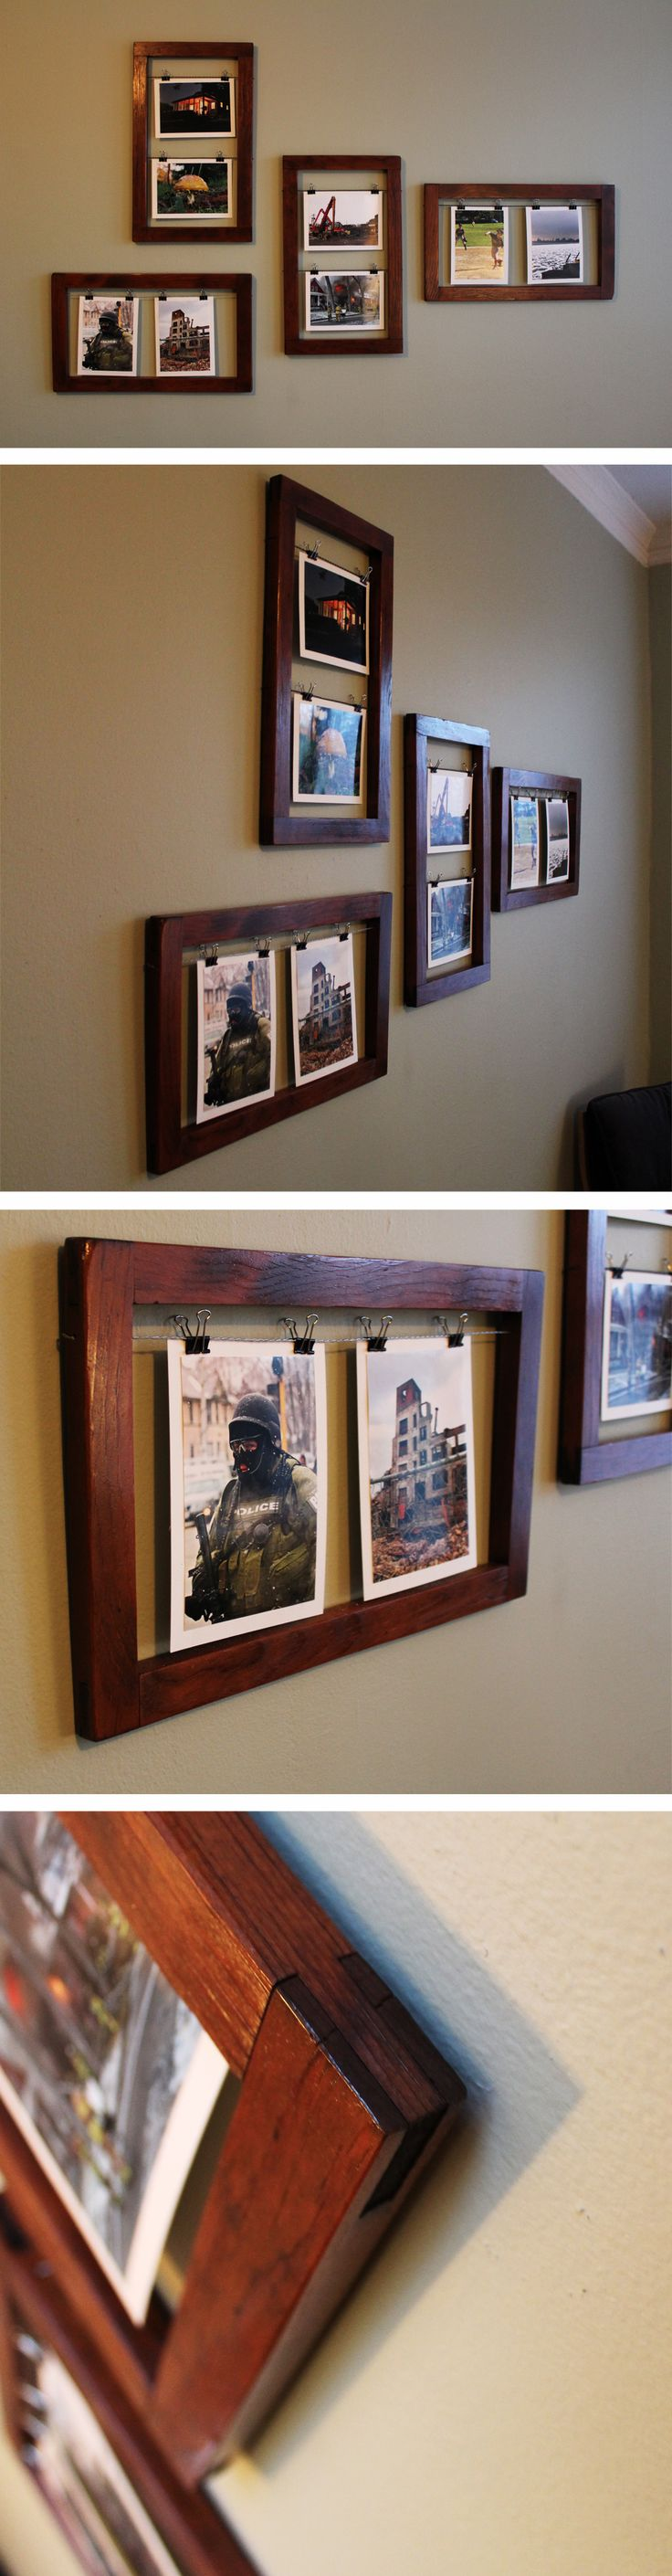 Glassless picture frames made from reclaimed window screen frames.